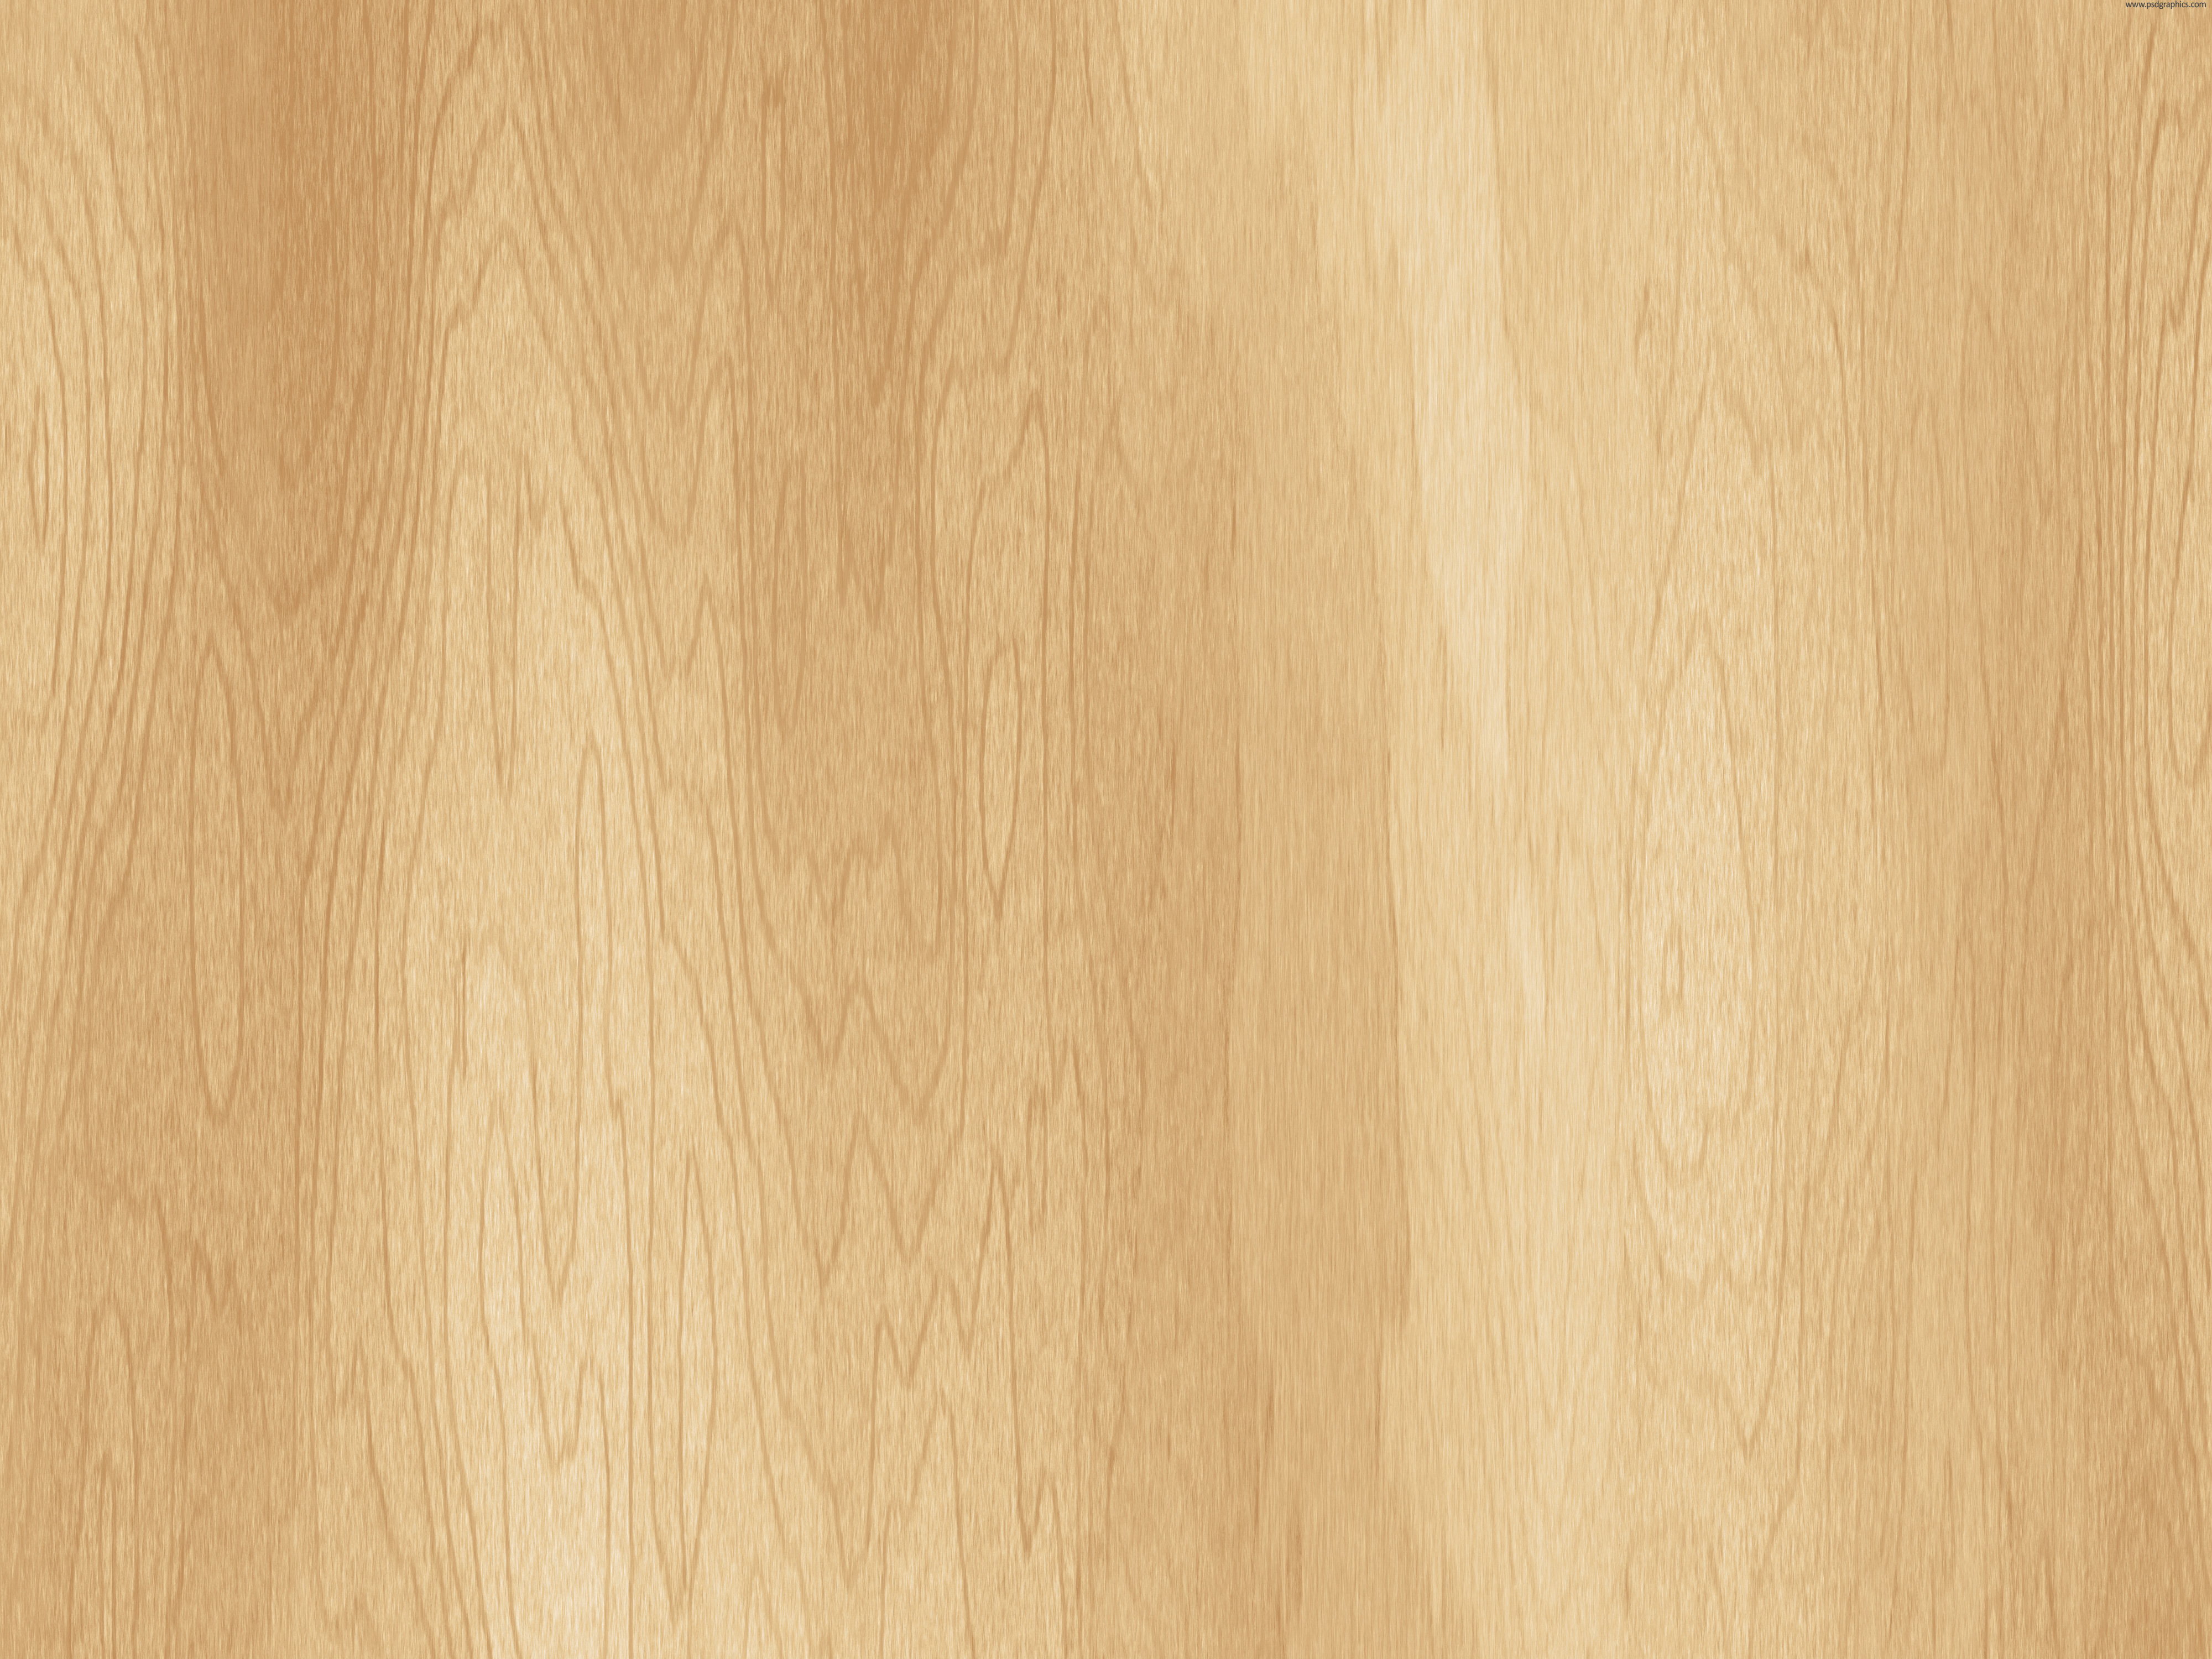 18 Wood Background Graphic Images